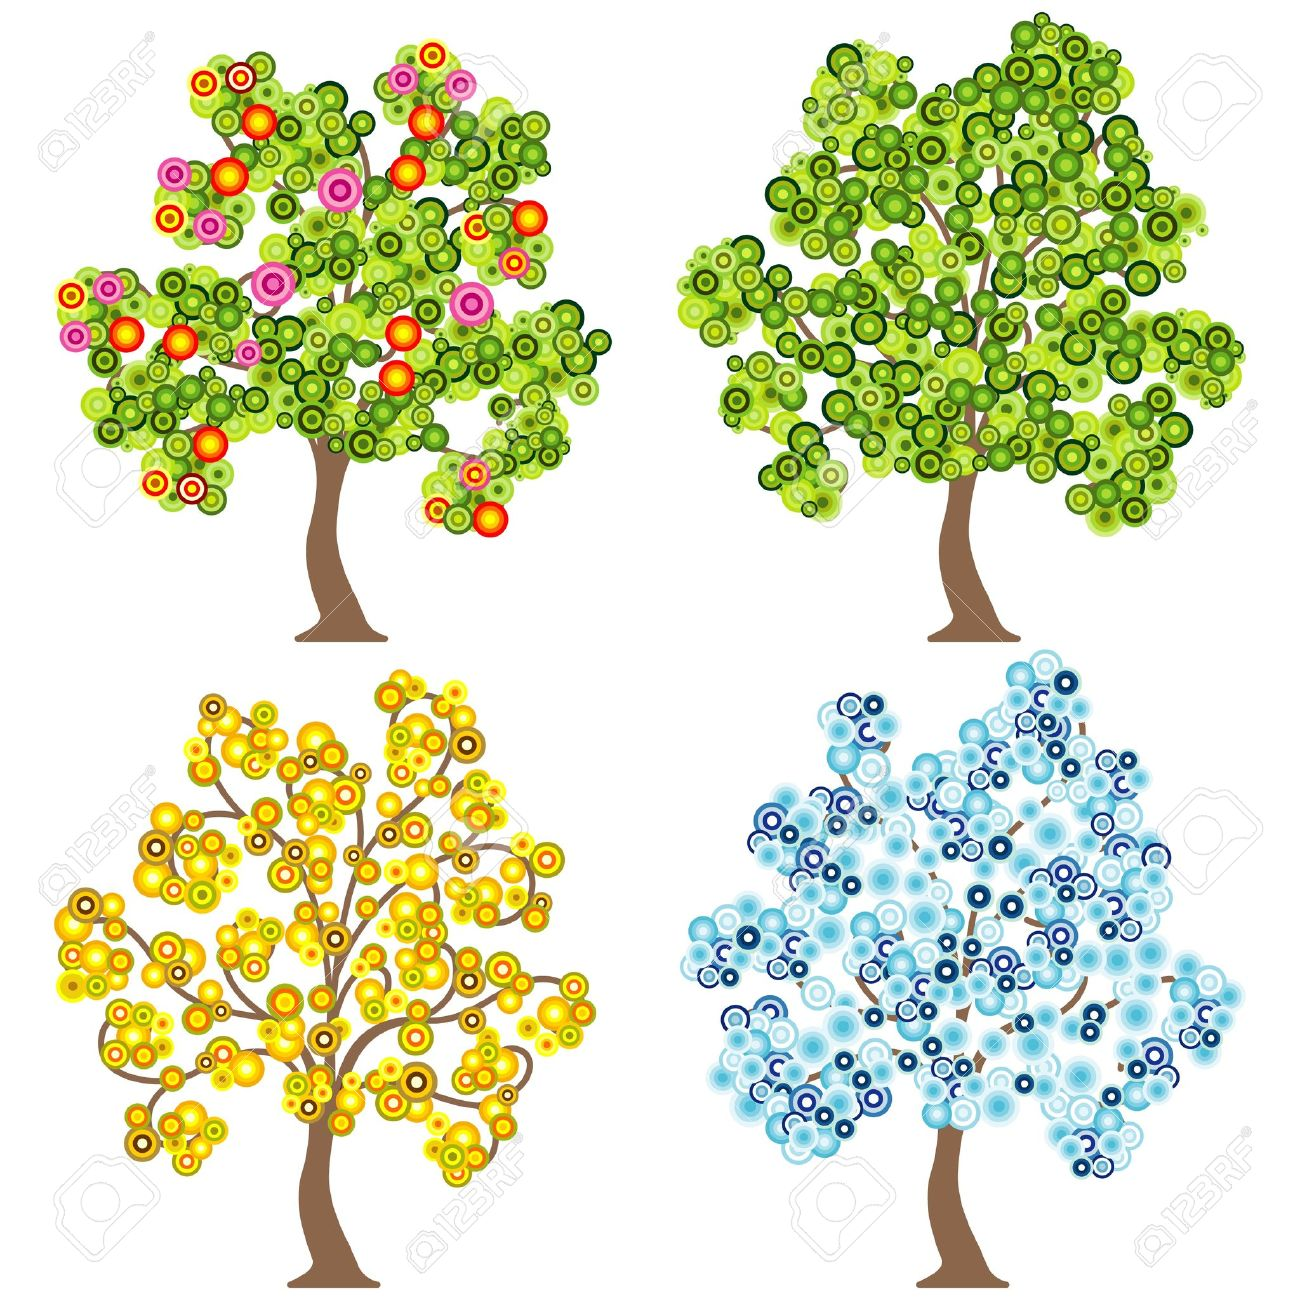 Trees. Cereal clipart tree